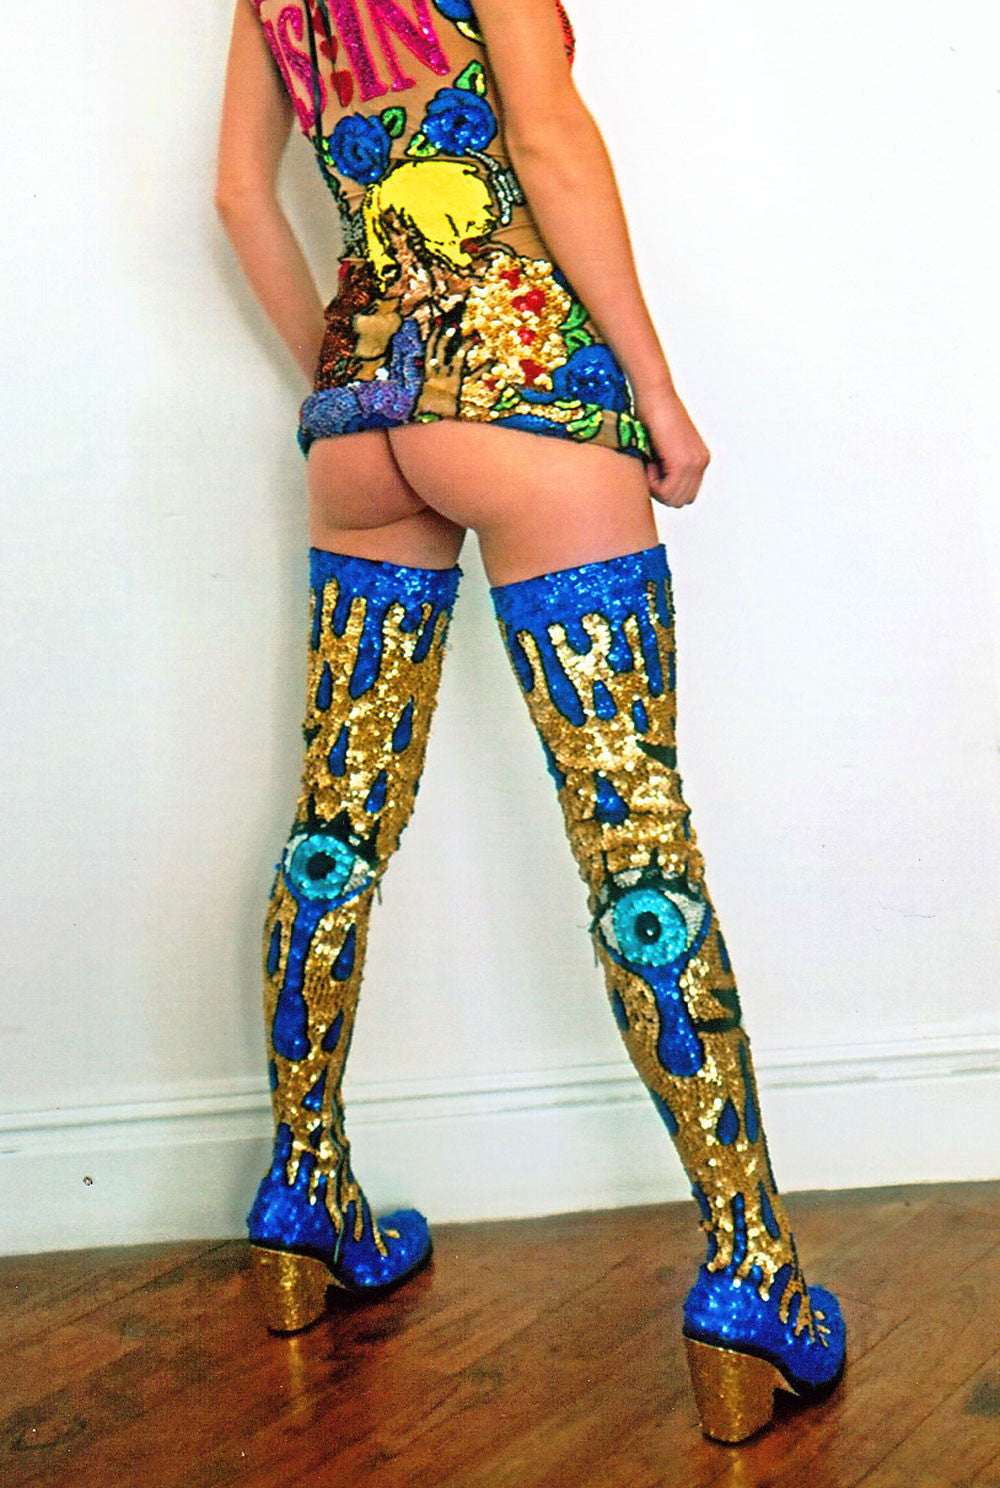 'CRYING EYE' Hand-sequinned Thigh High Boots